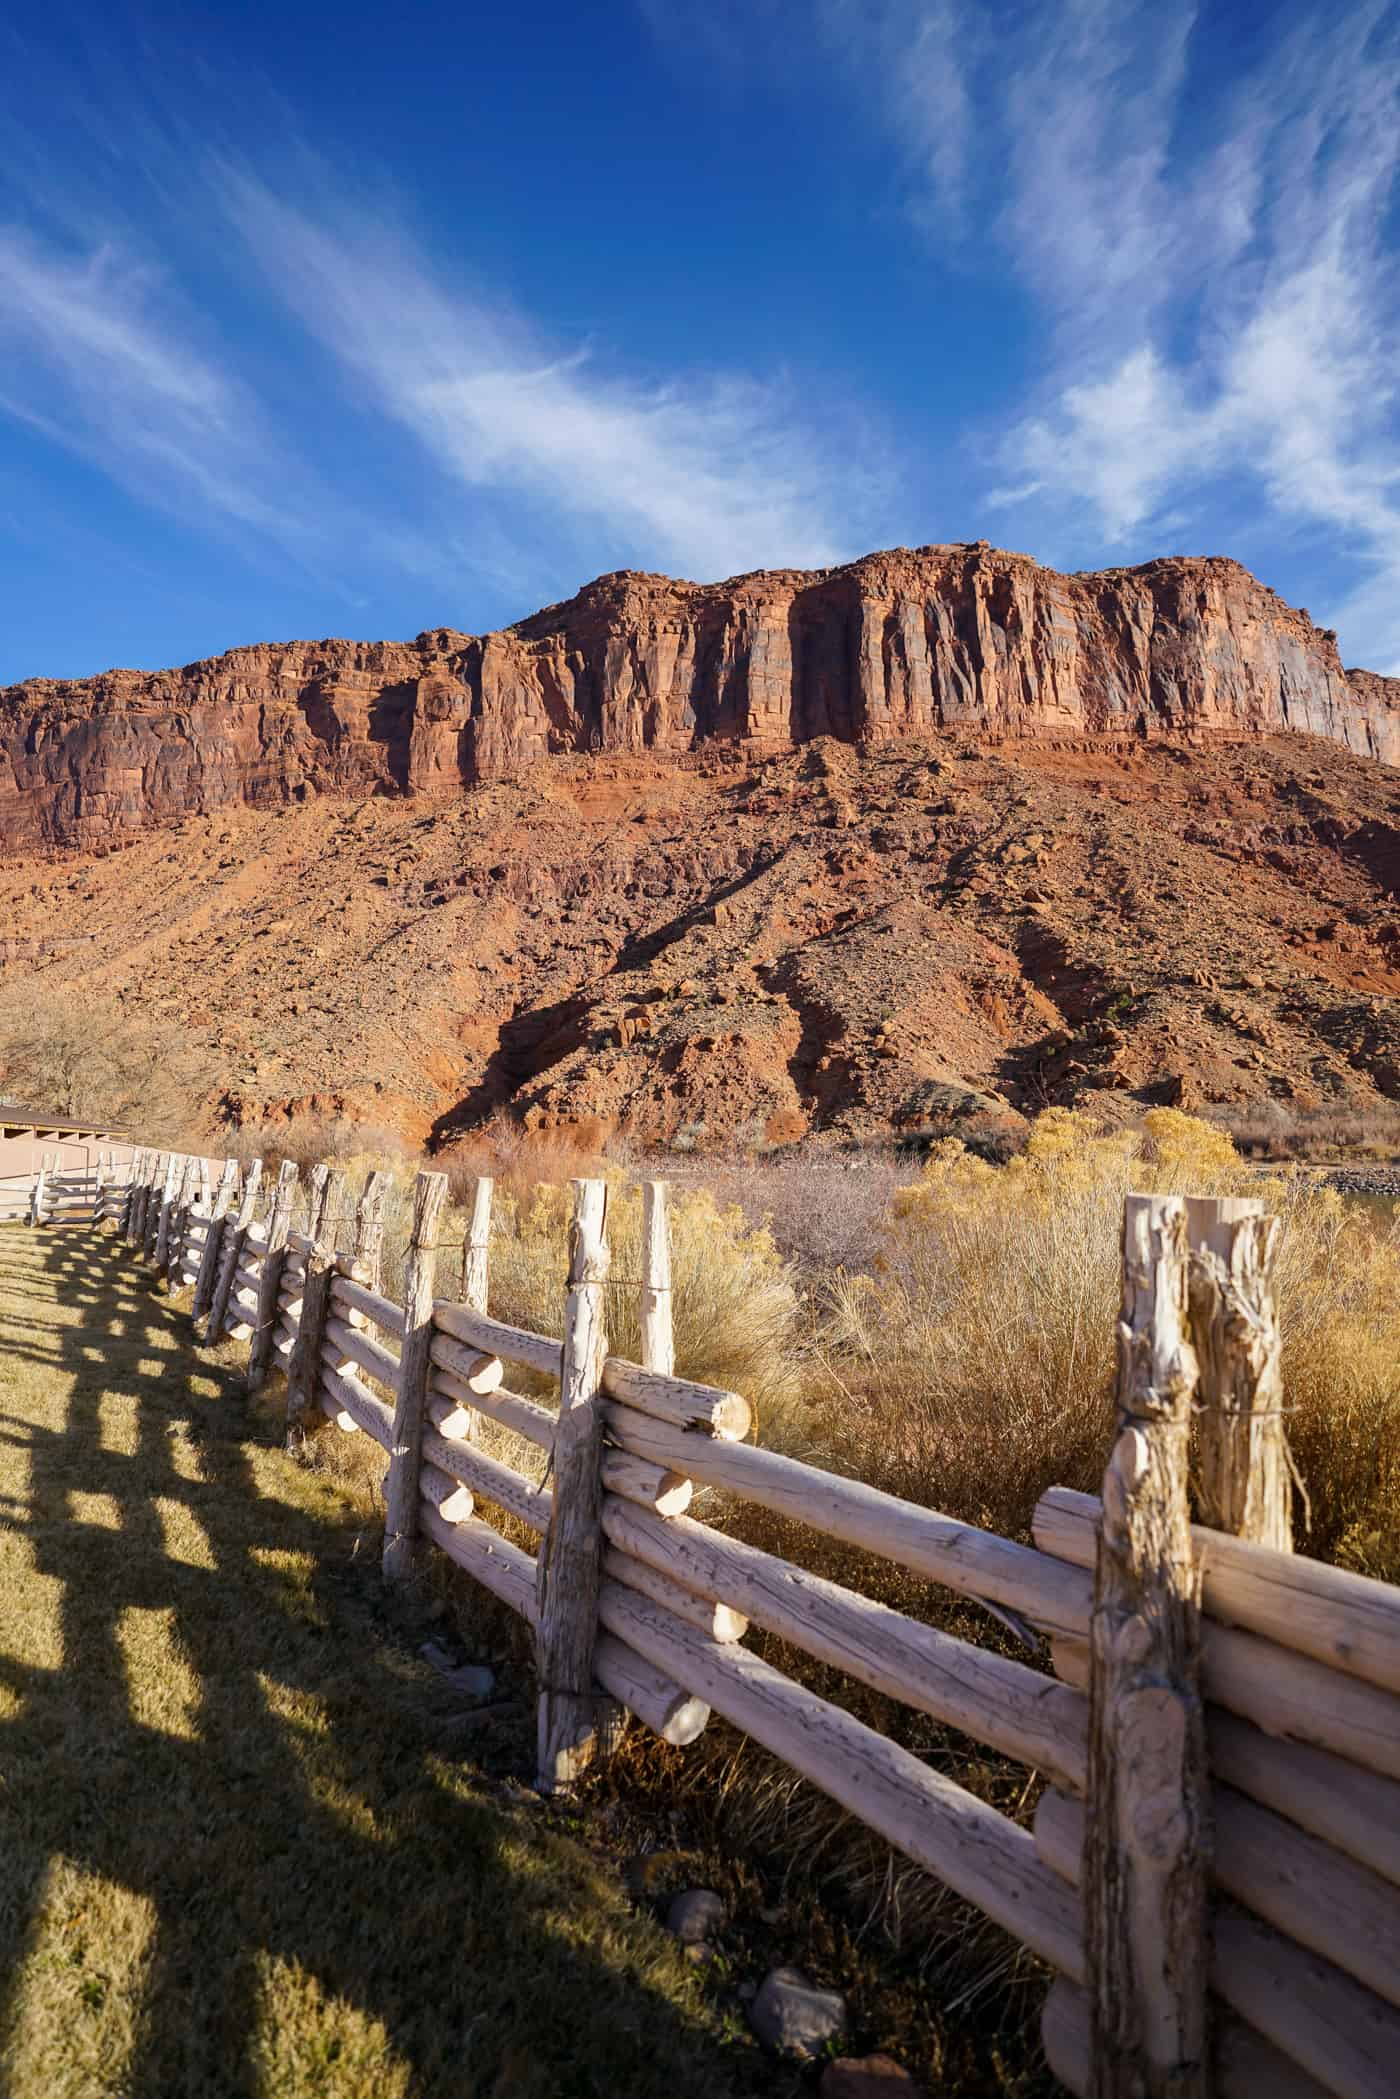 A wooden fence running along the Colorado River and red rocks of Moab Utah.